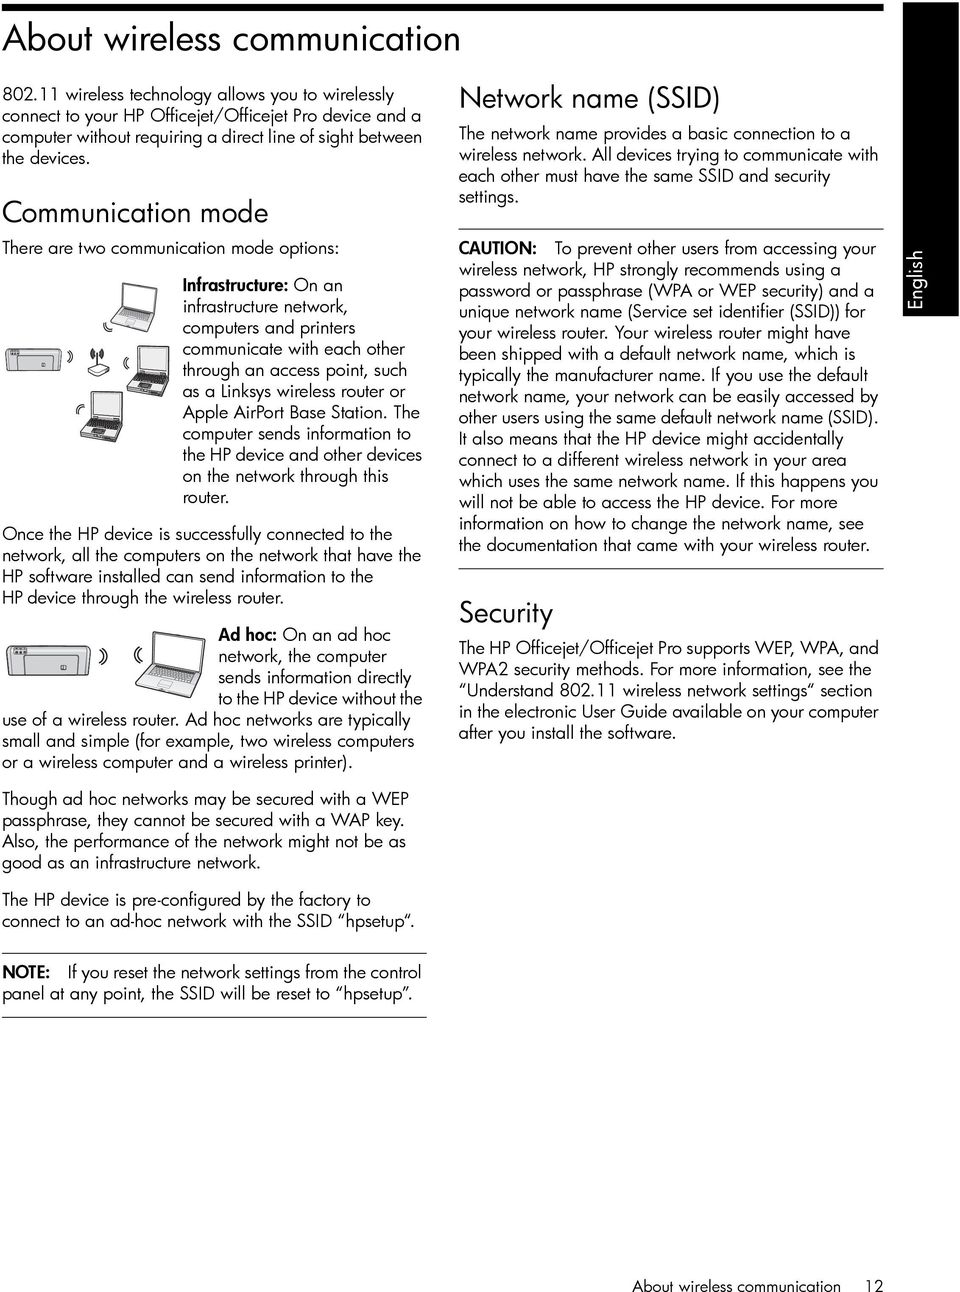 Communication mode There are two communication mode options: Infrastructure: On an infrastructure network, computers and printers communicate with each other through an access point, such as a